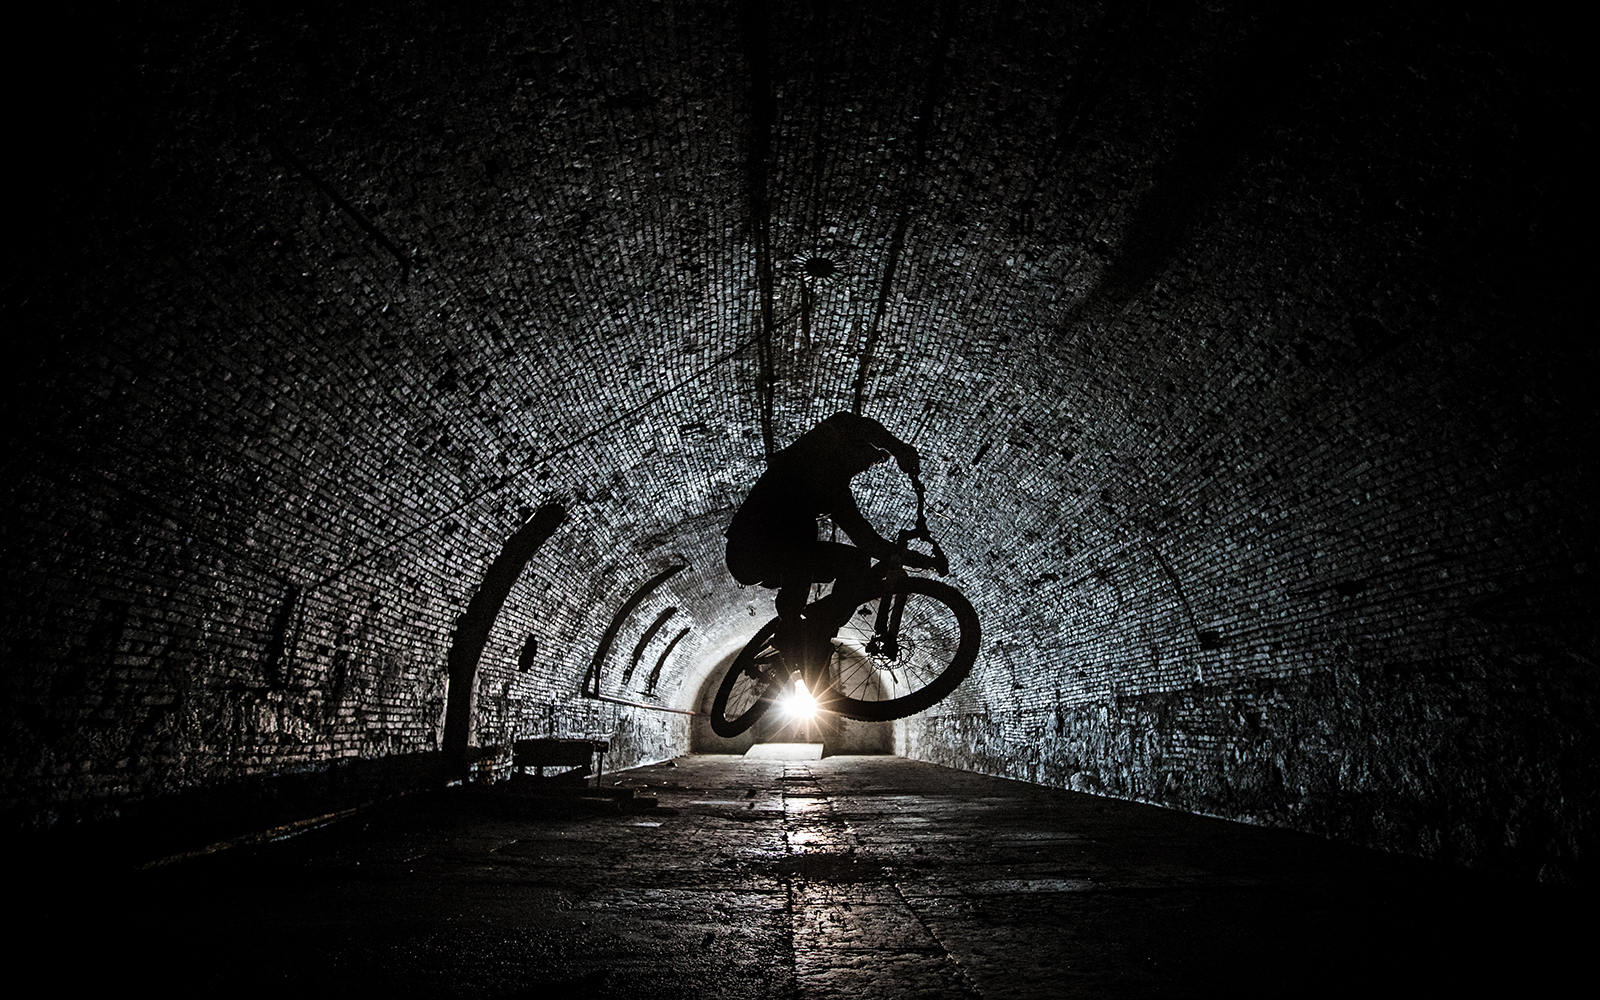 Thomas Oehler, Trailbike, Session, Salzburg, Red Bull